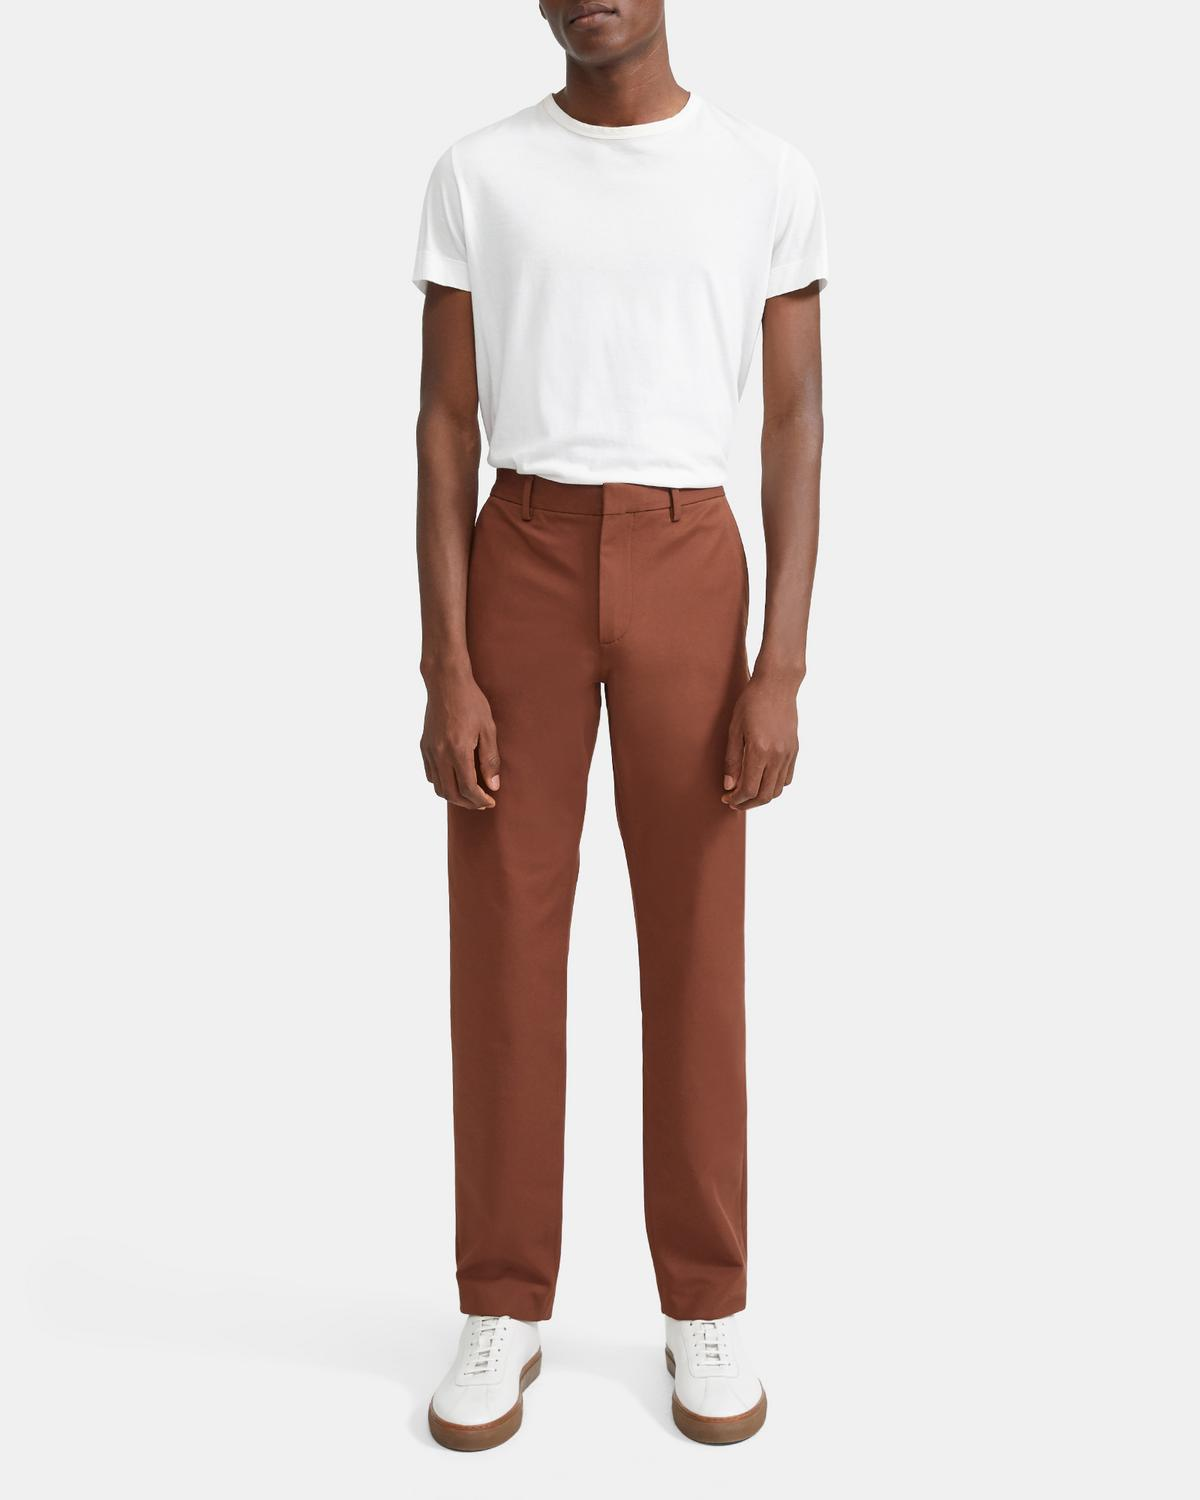 Zaine Pant in Double Stretch Cotton